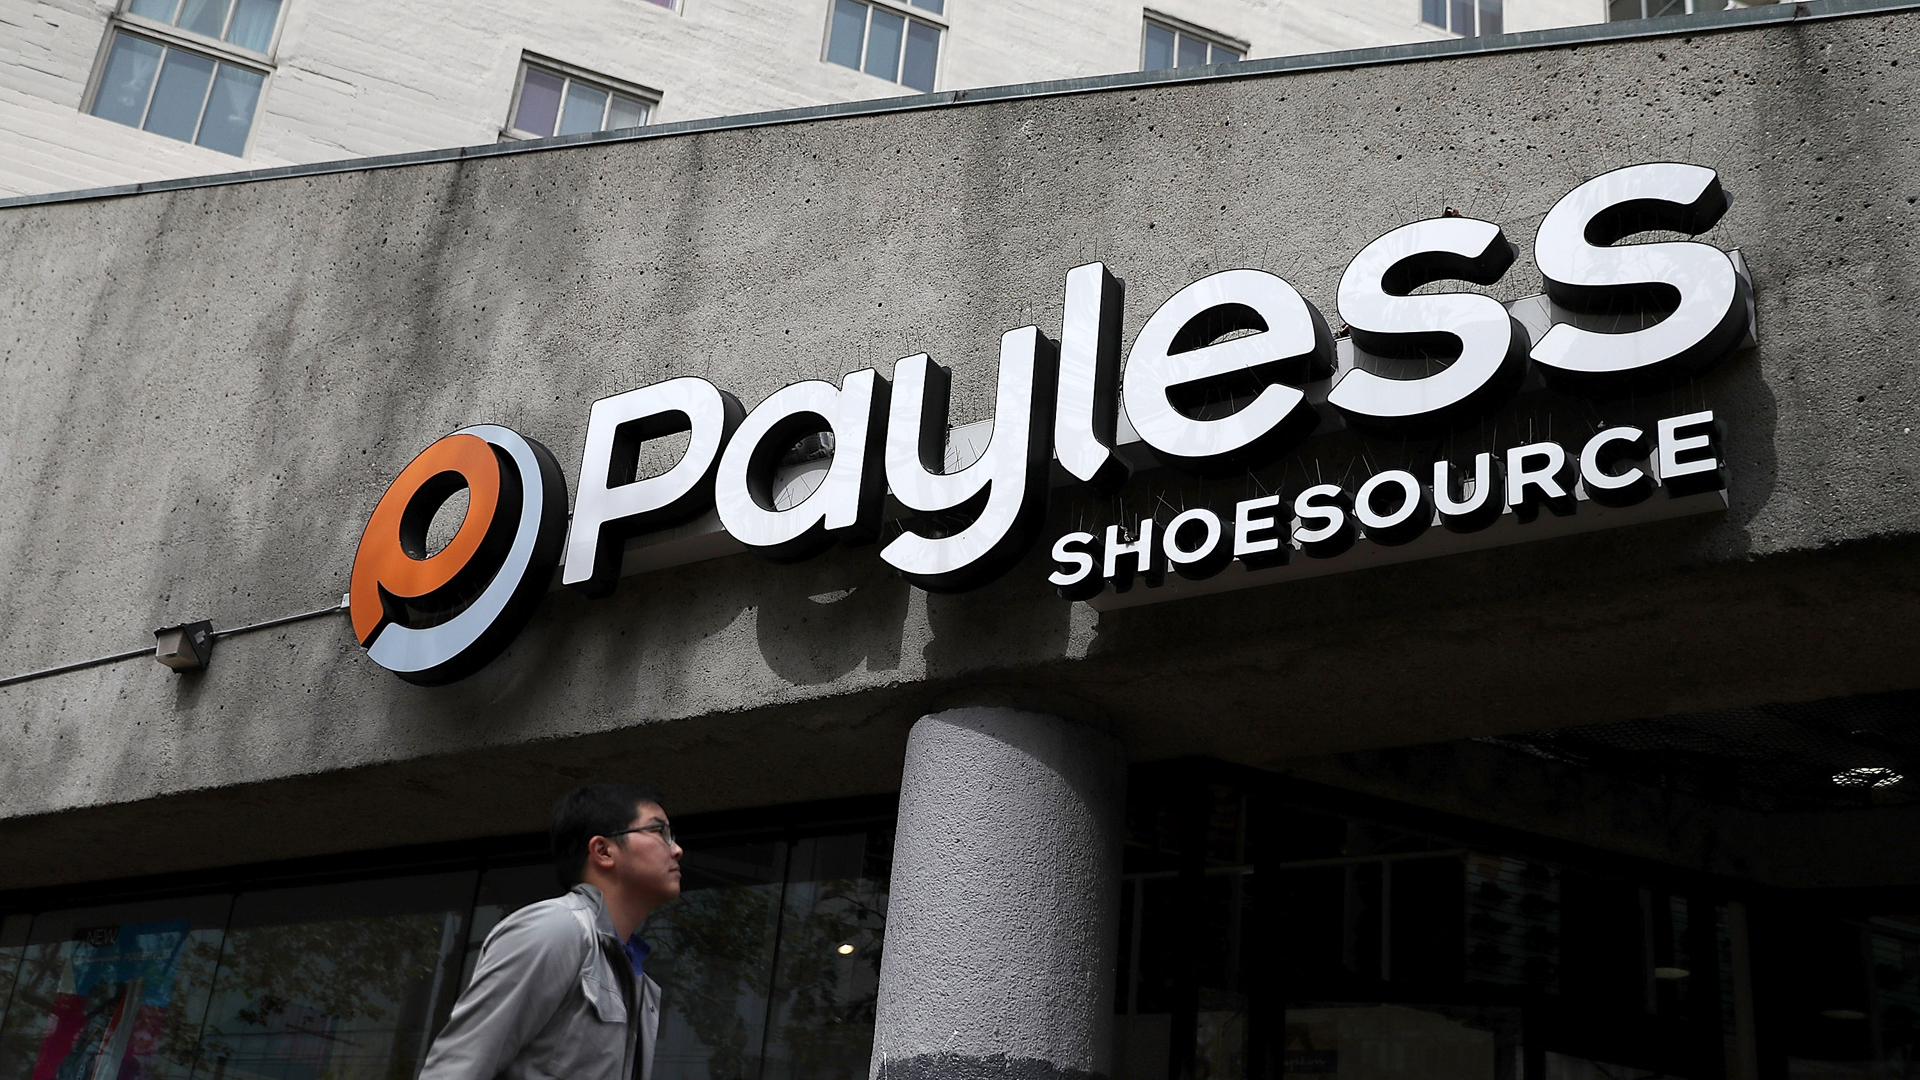 A pedestrian walks by a Payless Shoe Source store on April 5, 2017 in San Francisco. (Credit: Justin Sullivan/Getty Images)